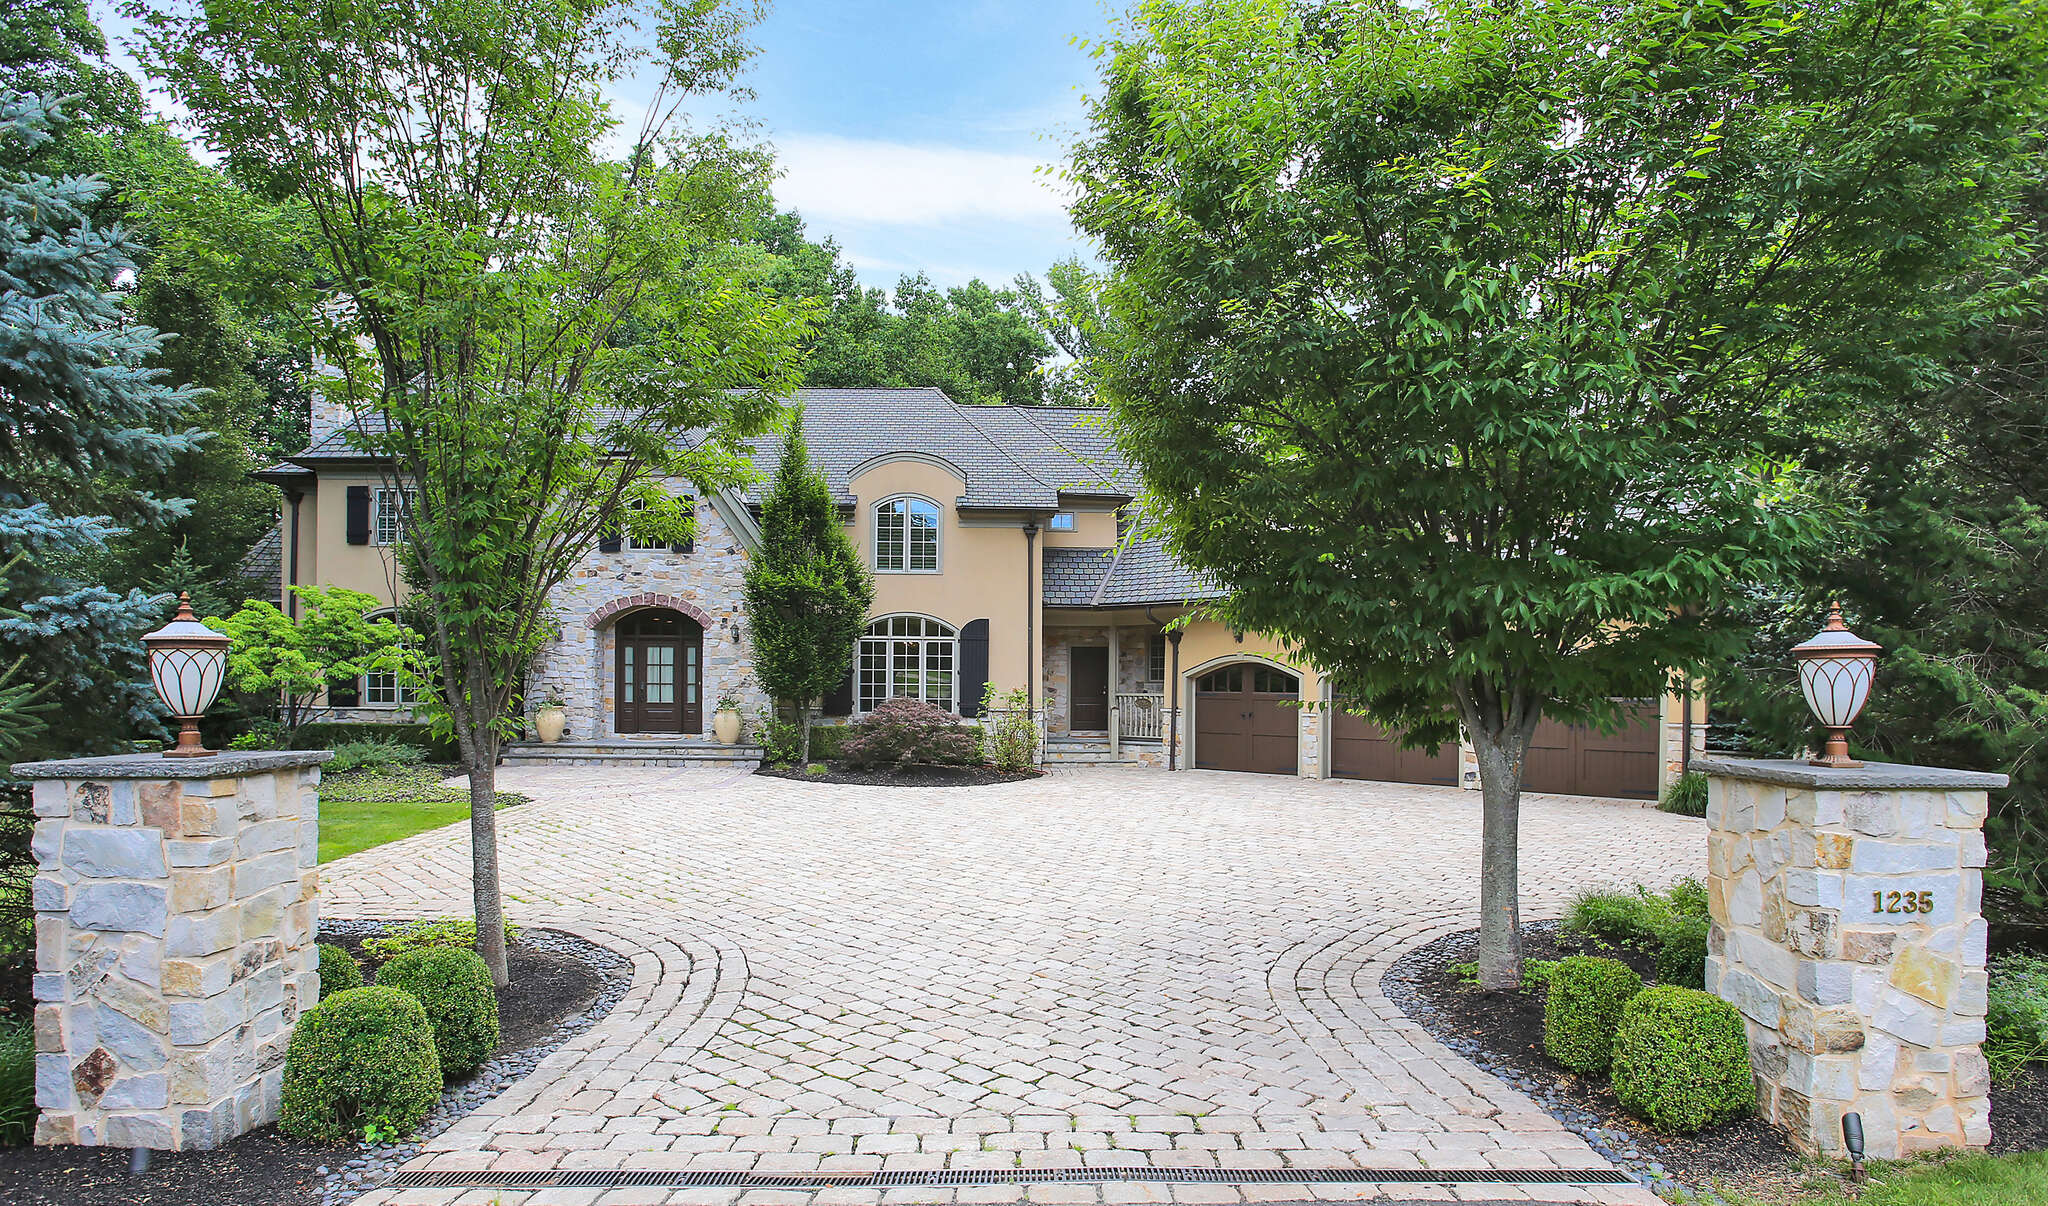 Single Family for Sale at 1235 Cooper Road Scotch Plains, New Jersey 07076 United States